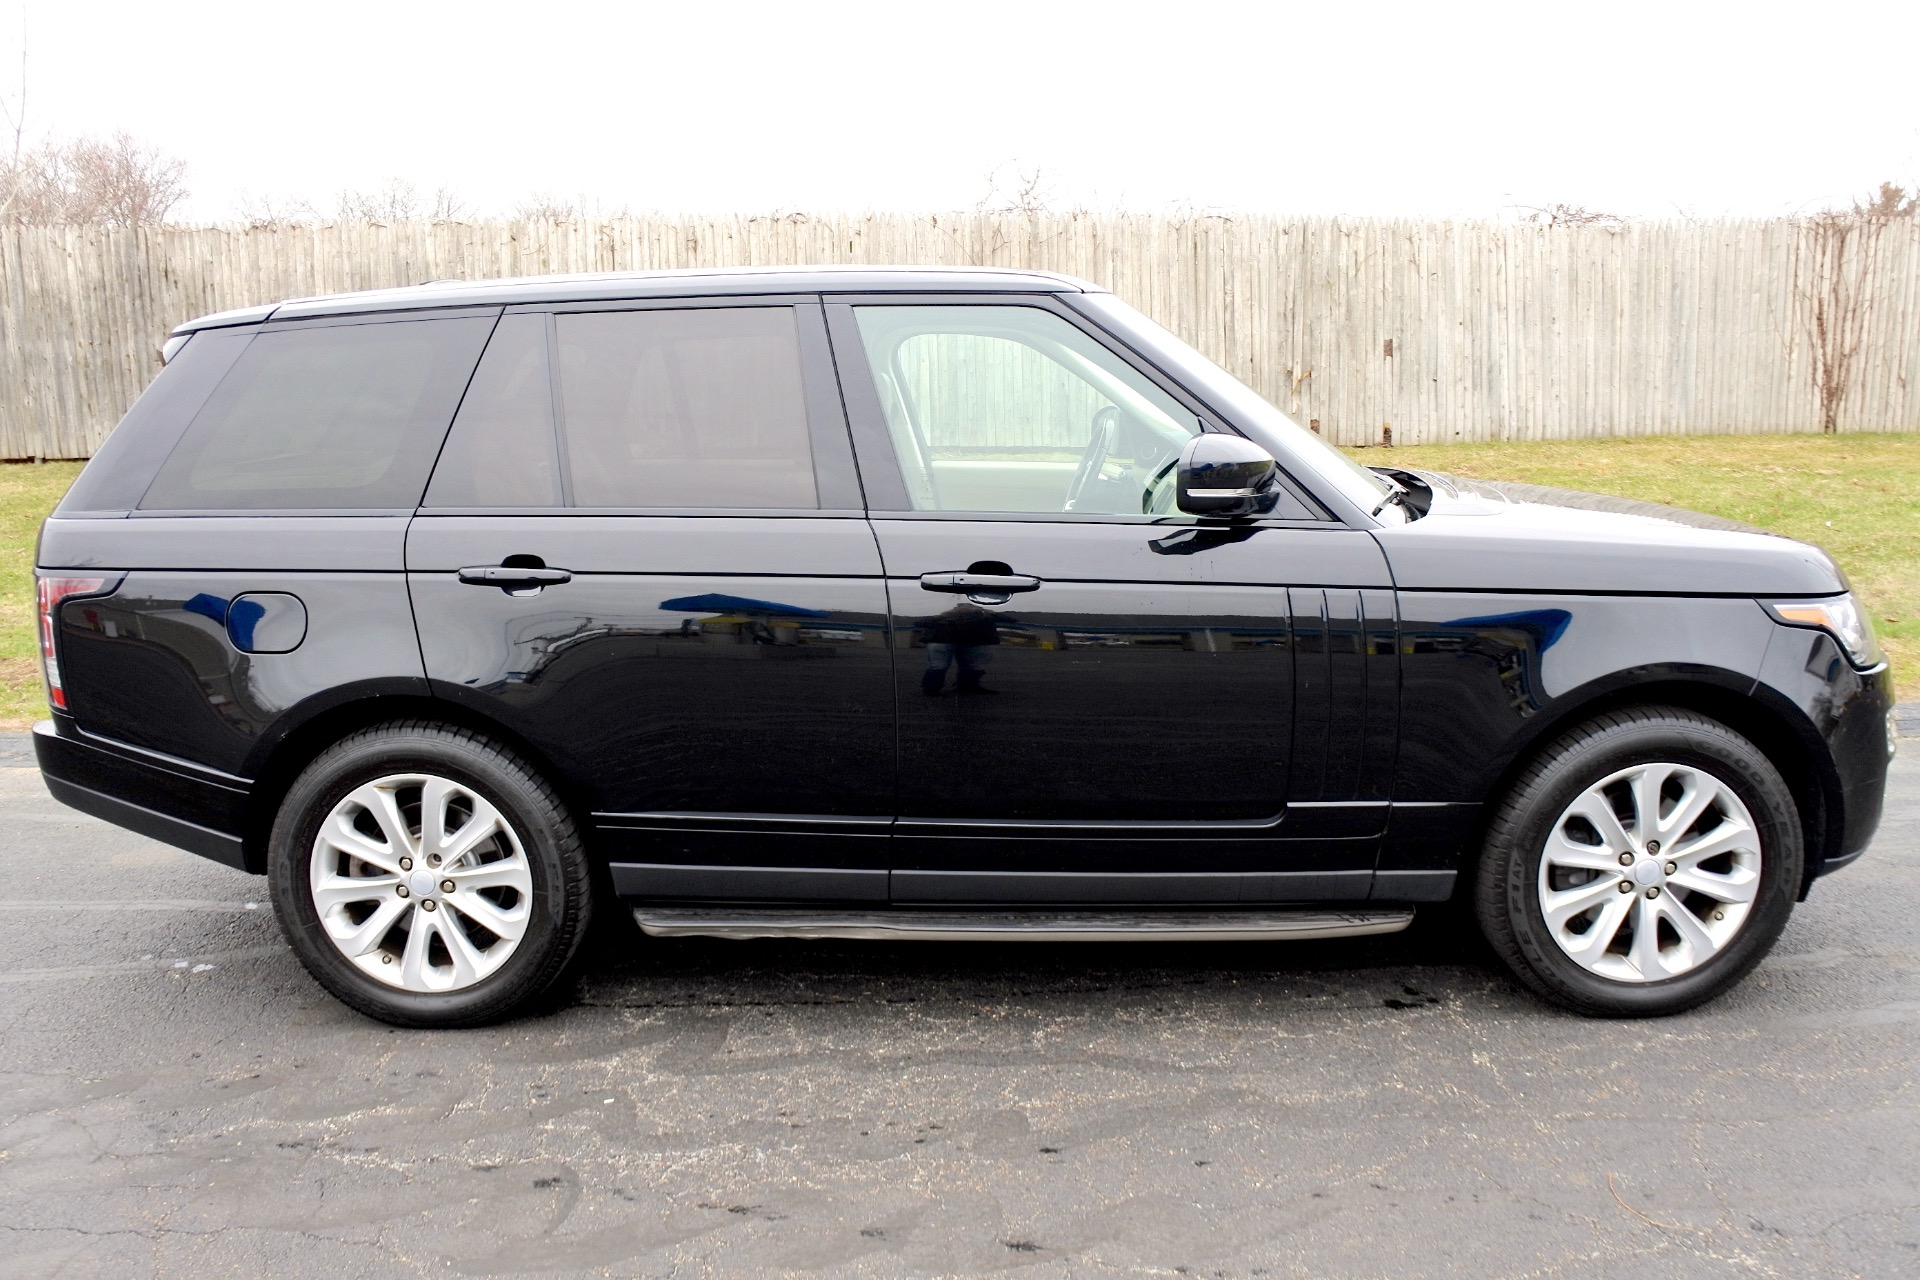 Used 2015 Land Rover Range Rover HSE Used 2015 Land Rover Range Rover HSE for sale  at Metro West Motorcars LLC in Shrewsbury MA 6